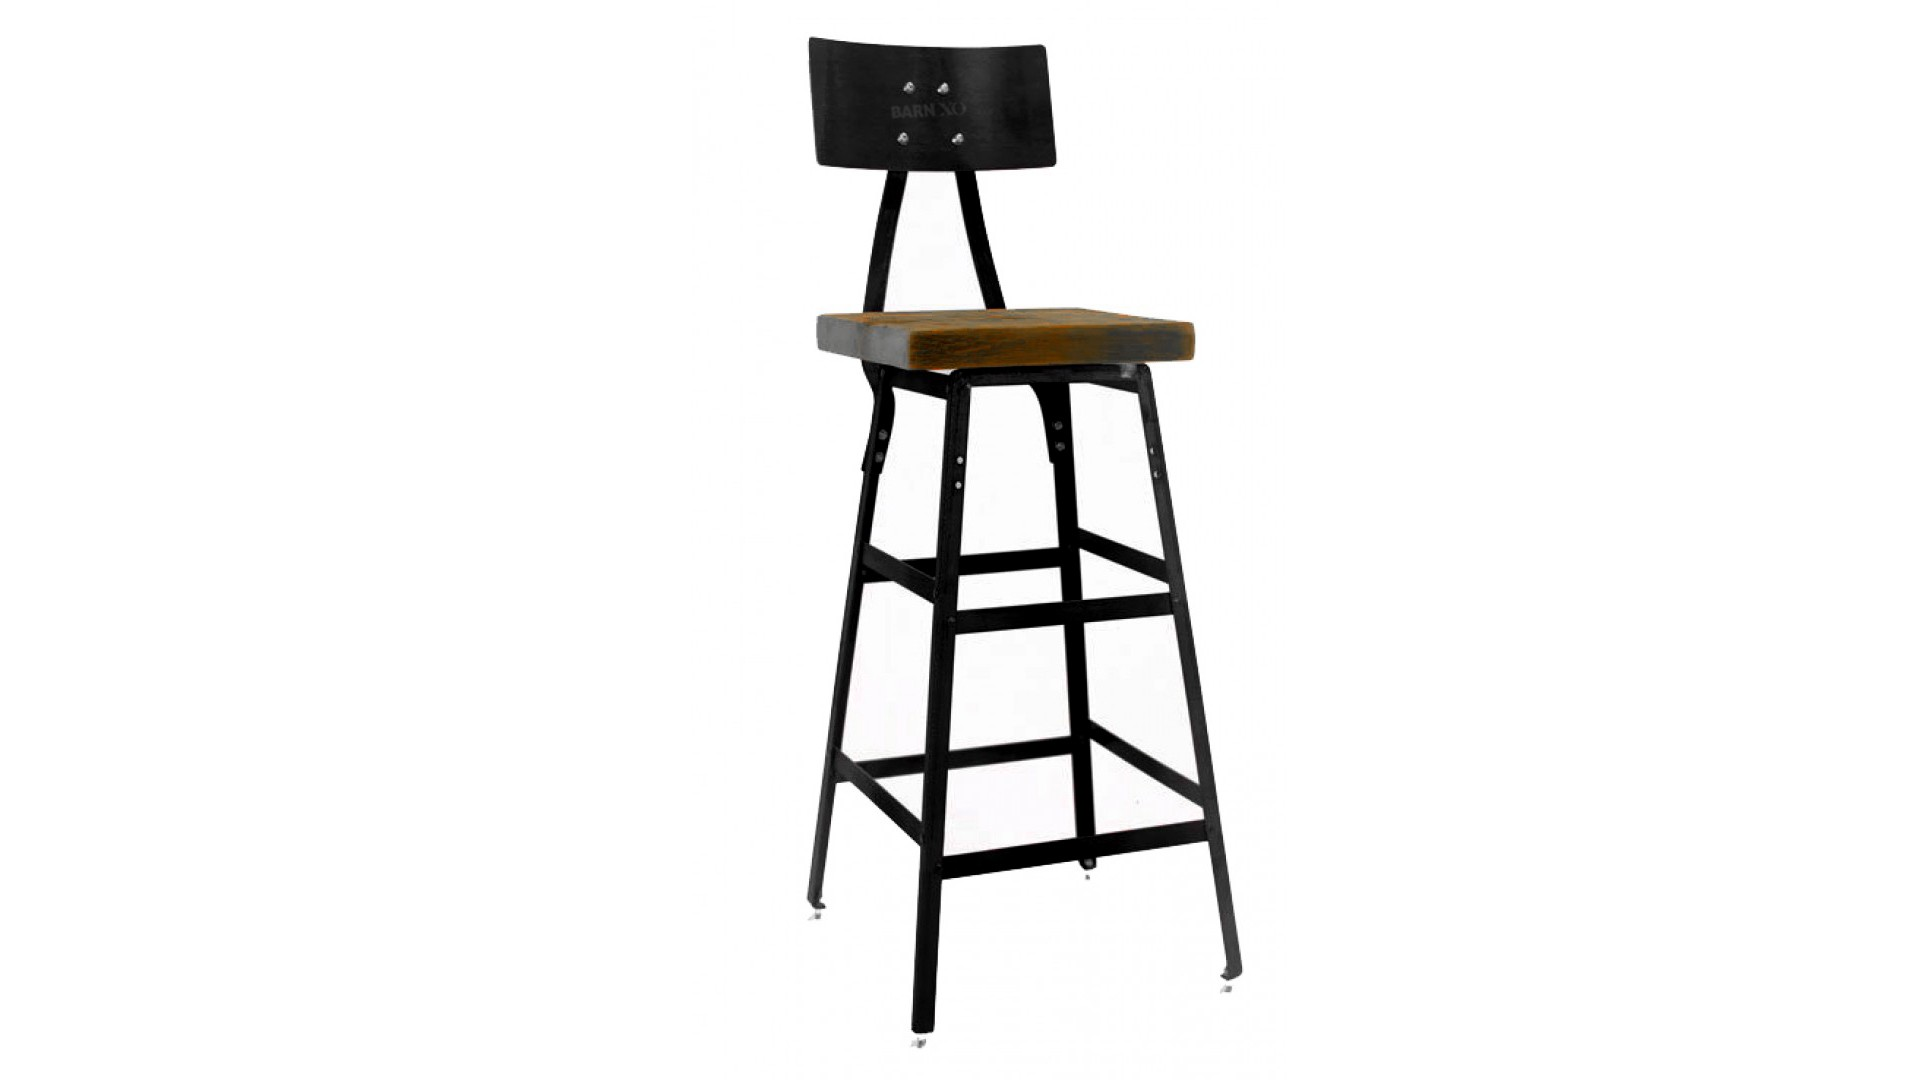 28 Barstools Urban Barstool Single Stool